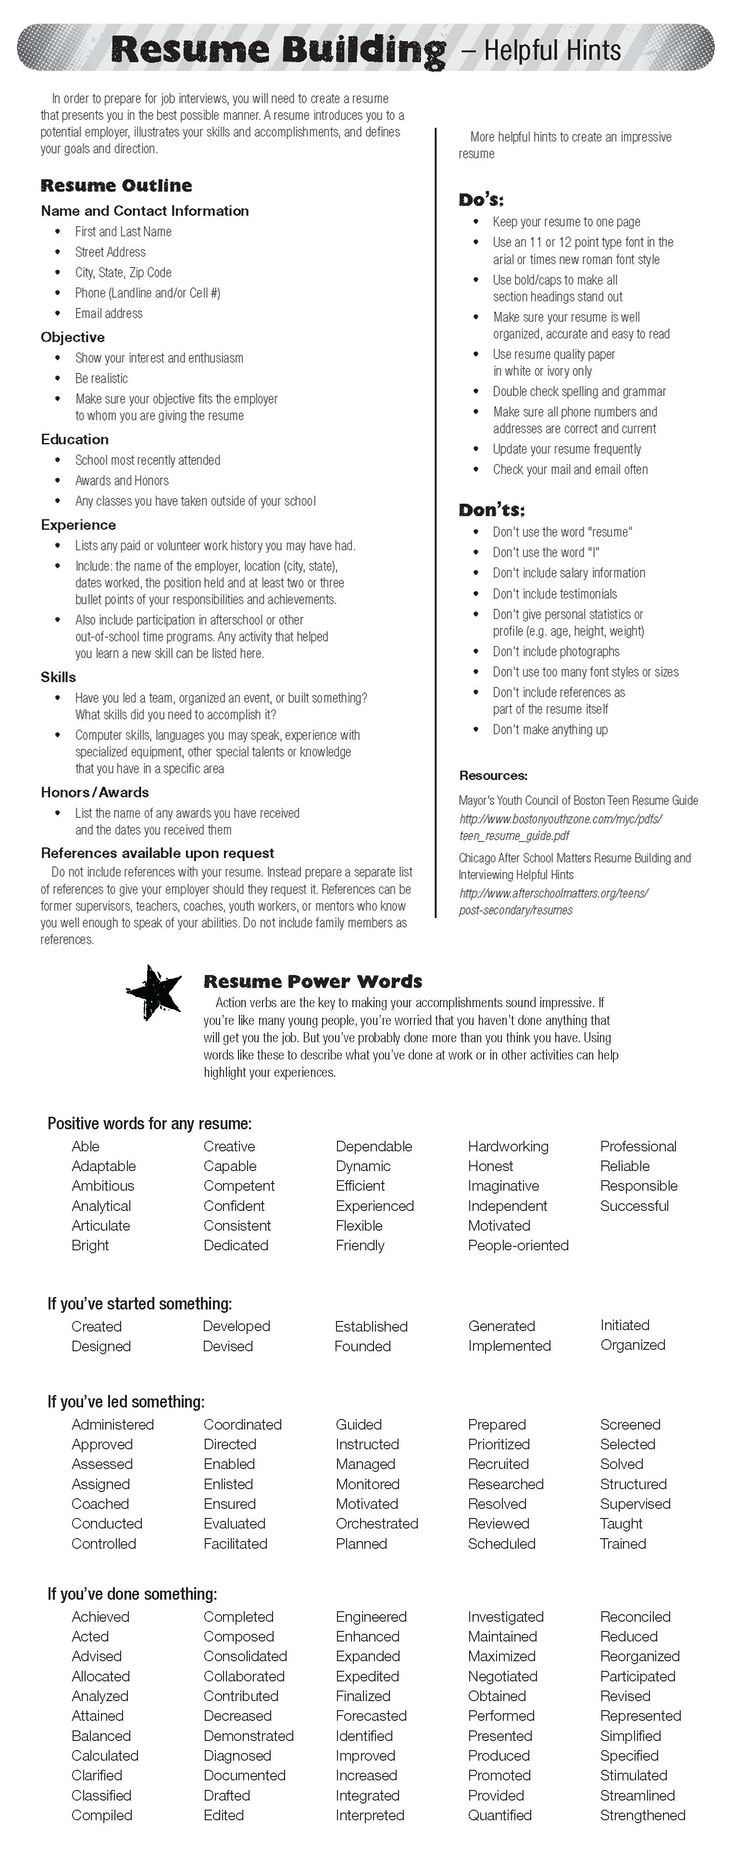 Opposenewapstandardsus  Stunning  Ideas About Resume On Pinterest  Cv Format Resume Cv And  With Engaging  Ideas About Resume On Pinterest  Cv Format Resume Cv And Resume Templates With Divine How To Make A Resume College Student Also Nursing Resume Objective Examples In Addition Strength And Conditioning Resume And Resume Weaknesses As Well As Policy Analyst Resume Additionally Communication Skills Resume Example From Pinterestcom With Opposenewapstandardsus  Engaging  Ideas About Resume On Pinterest  Cv Format Resume Cv And  With Divine  Ideas About Resume On Pinterest  Cv Format Resume Cv And Resume Templates And Stunning How To Make A Resume College Student Also Nursing Resume Objective Examples In Addition Strength And Conditioning Resume From Pinterestcom